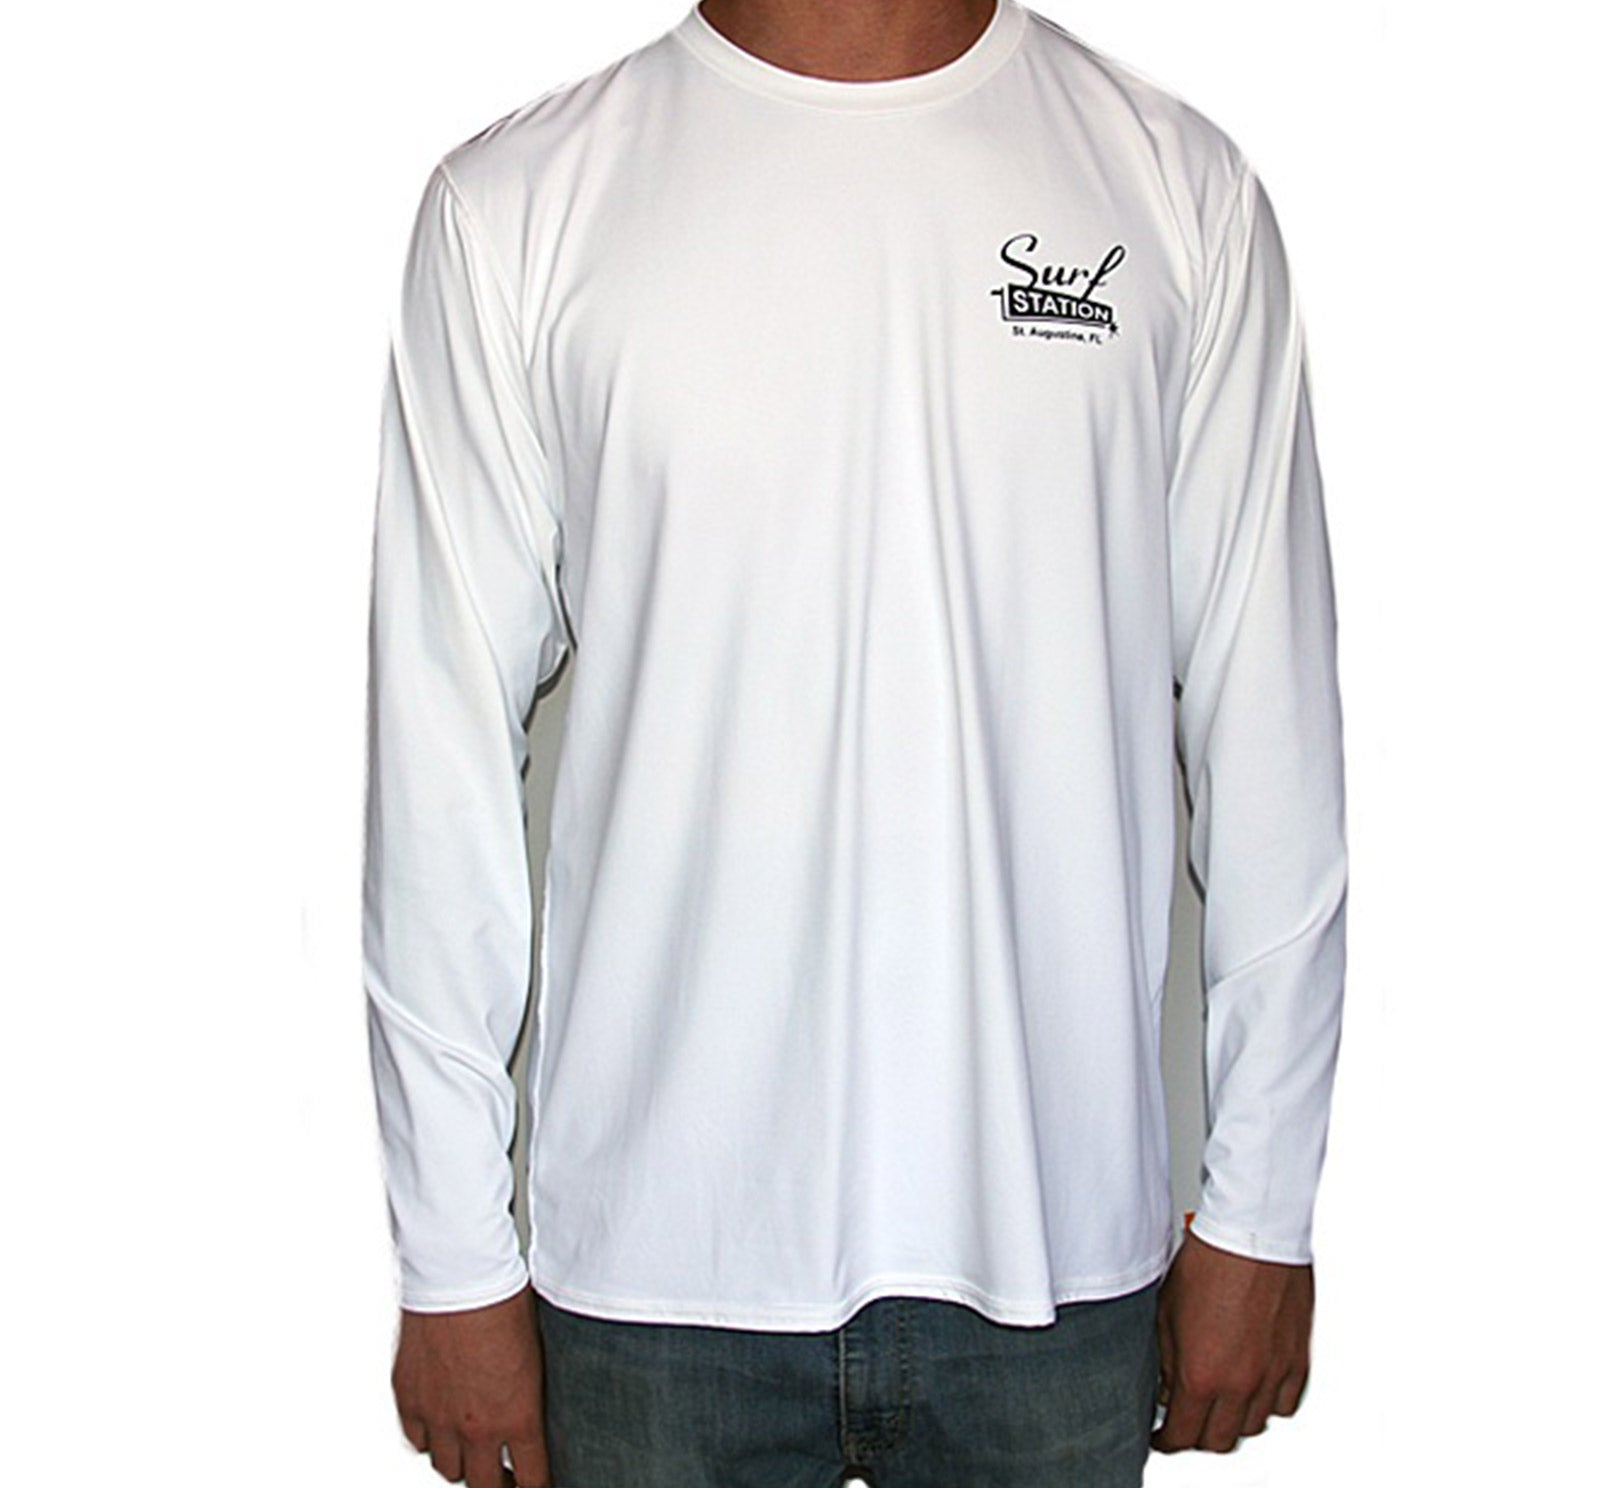 Surf Station Vegas Logo Men's Vented Back L/S Rashguard